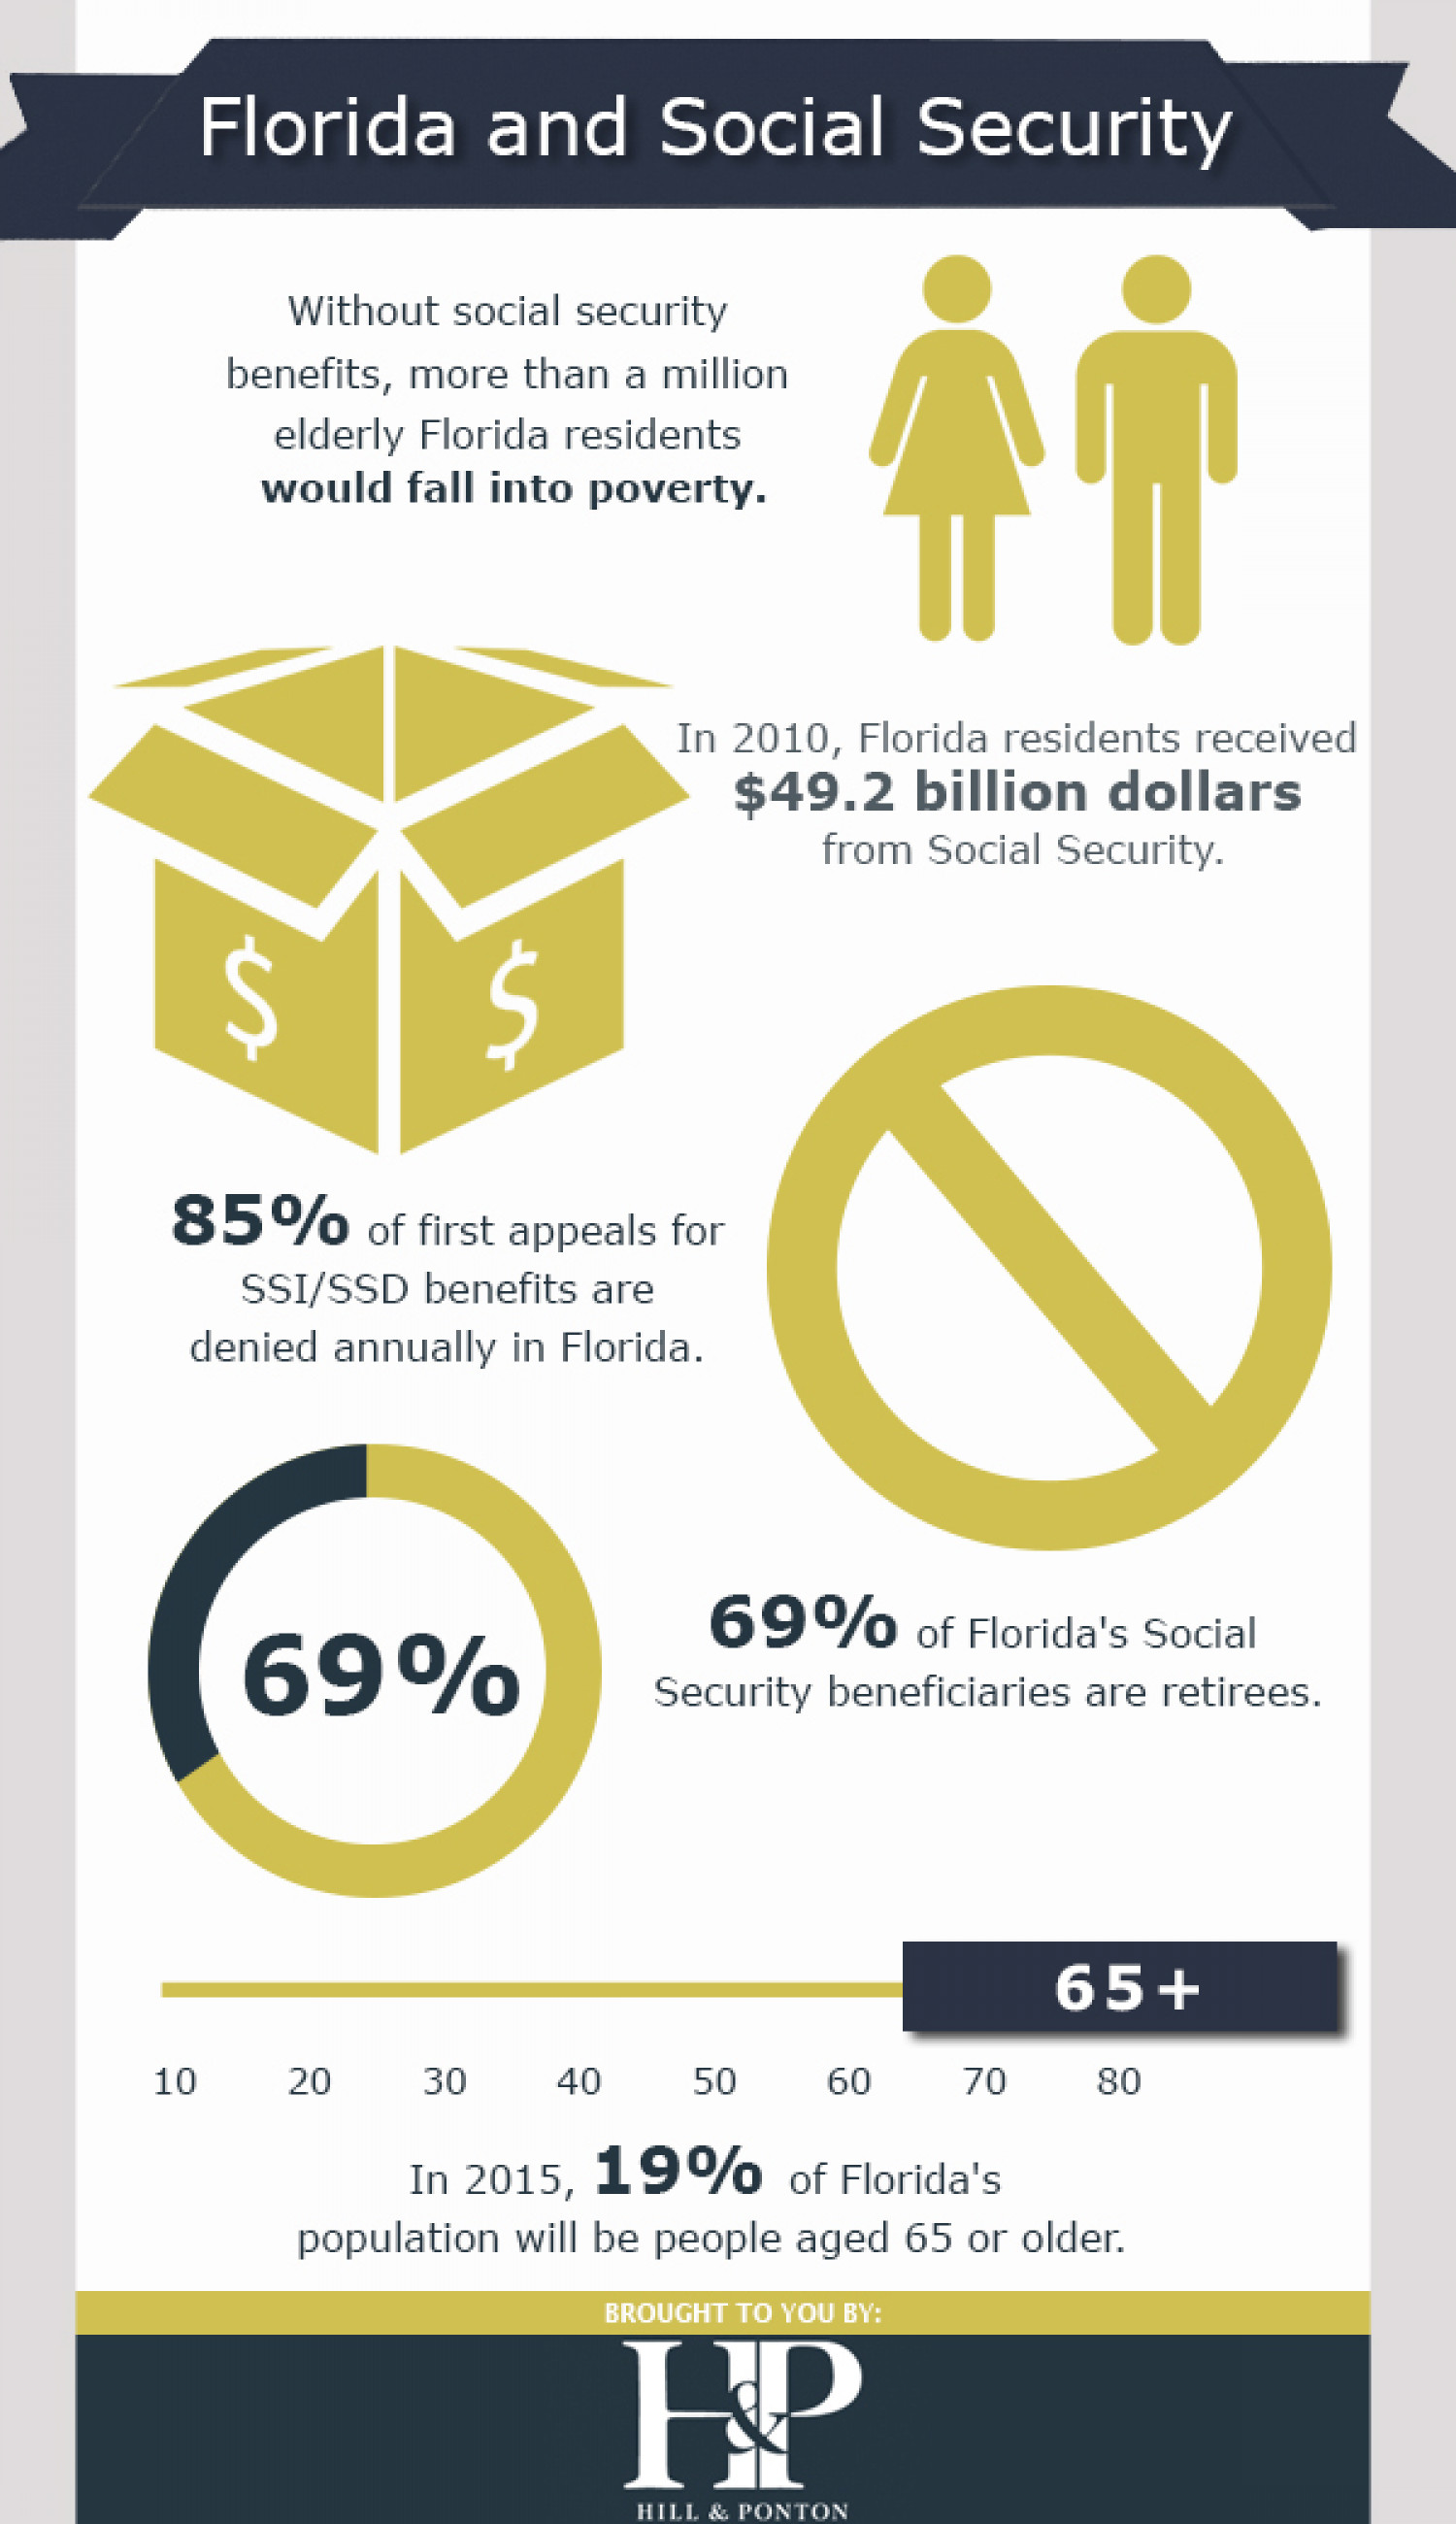 Florida and Social Security Infographic